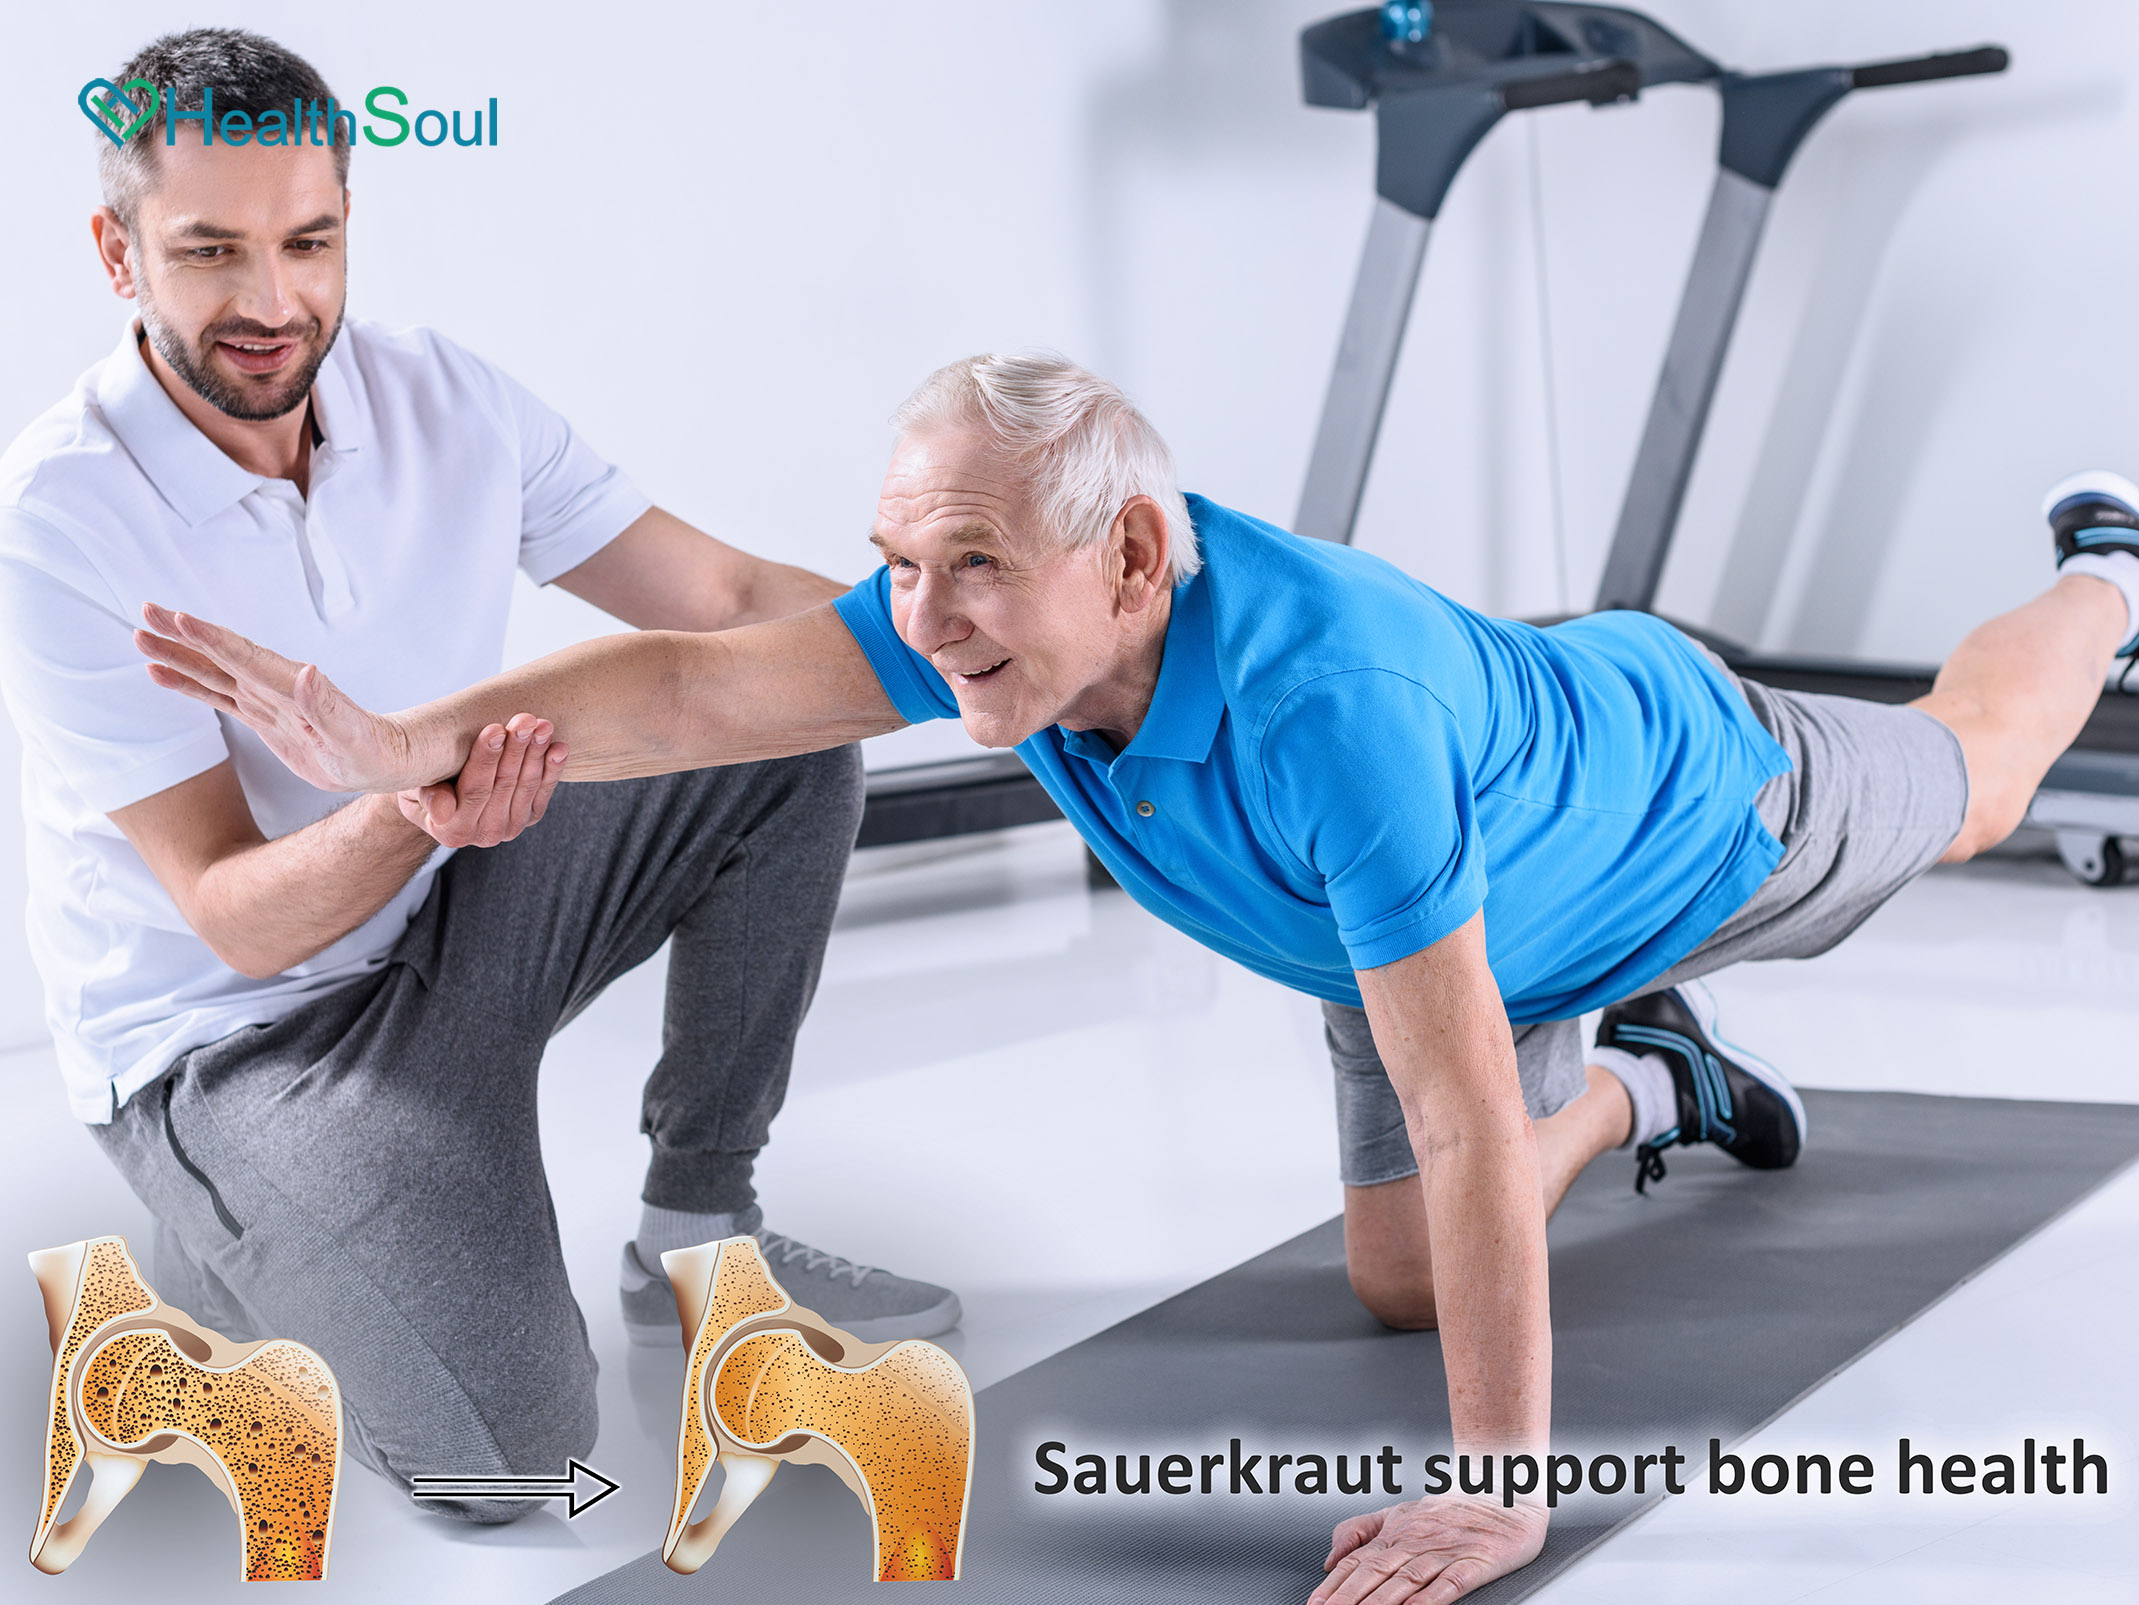 May support bone